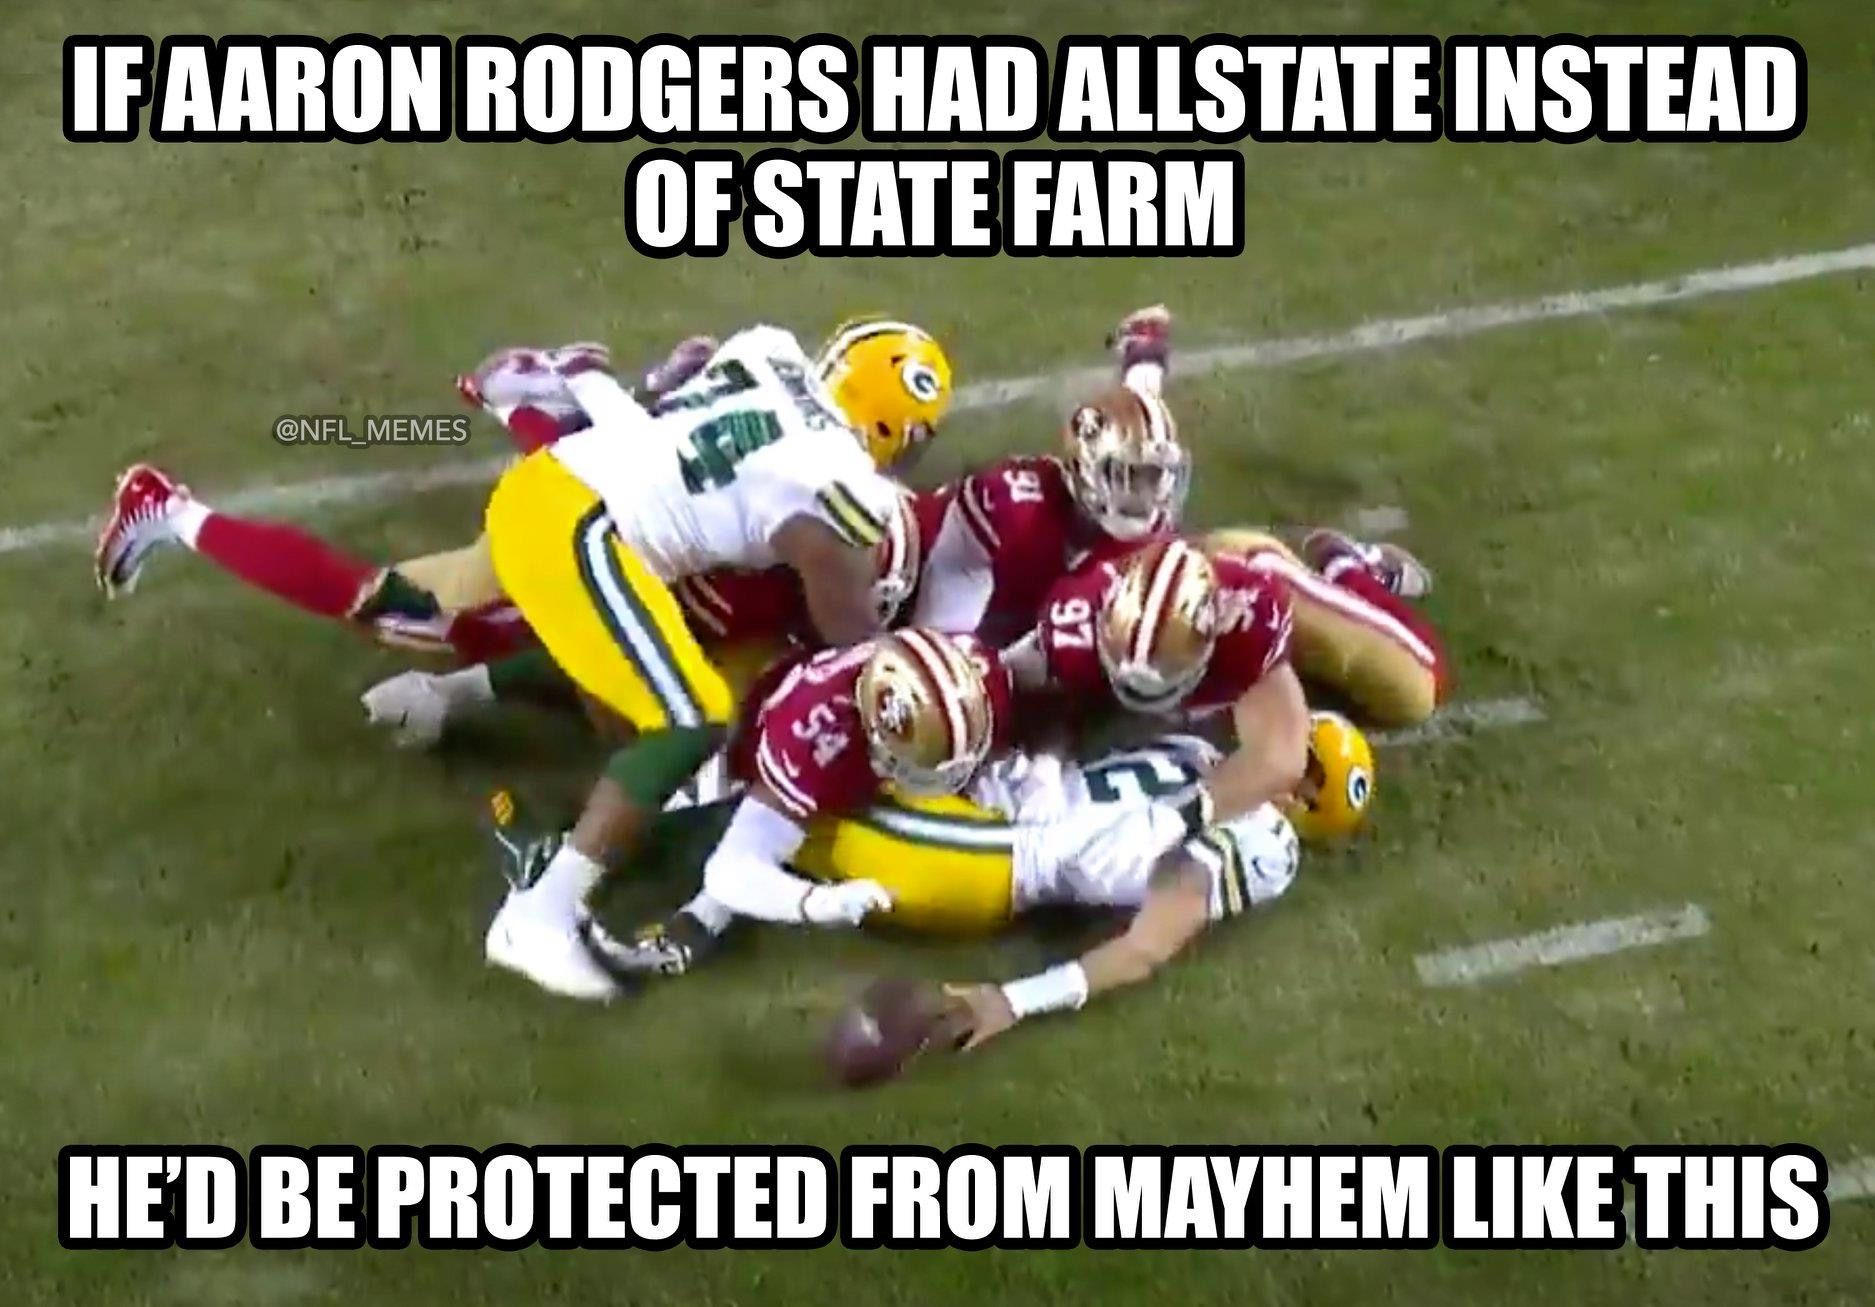 Pin By Jay Burd On Funny Animals In 2020 Aaron Rodgers Green Bay Memes Nfl Memes